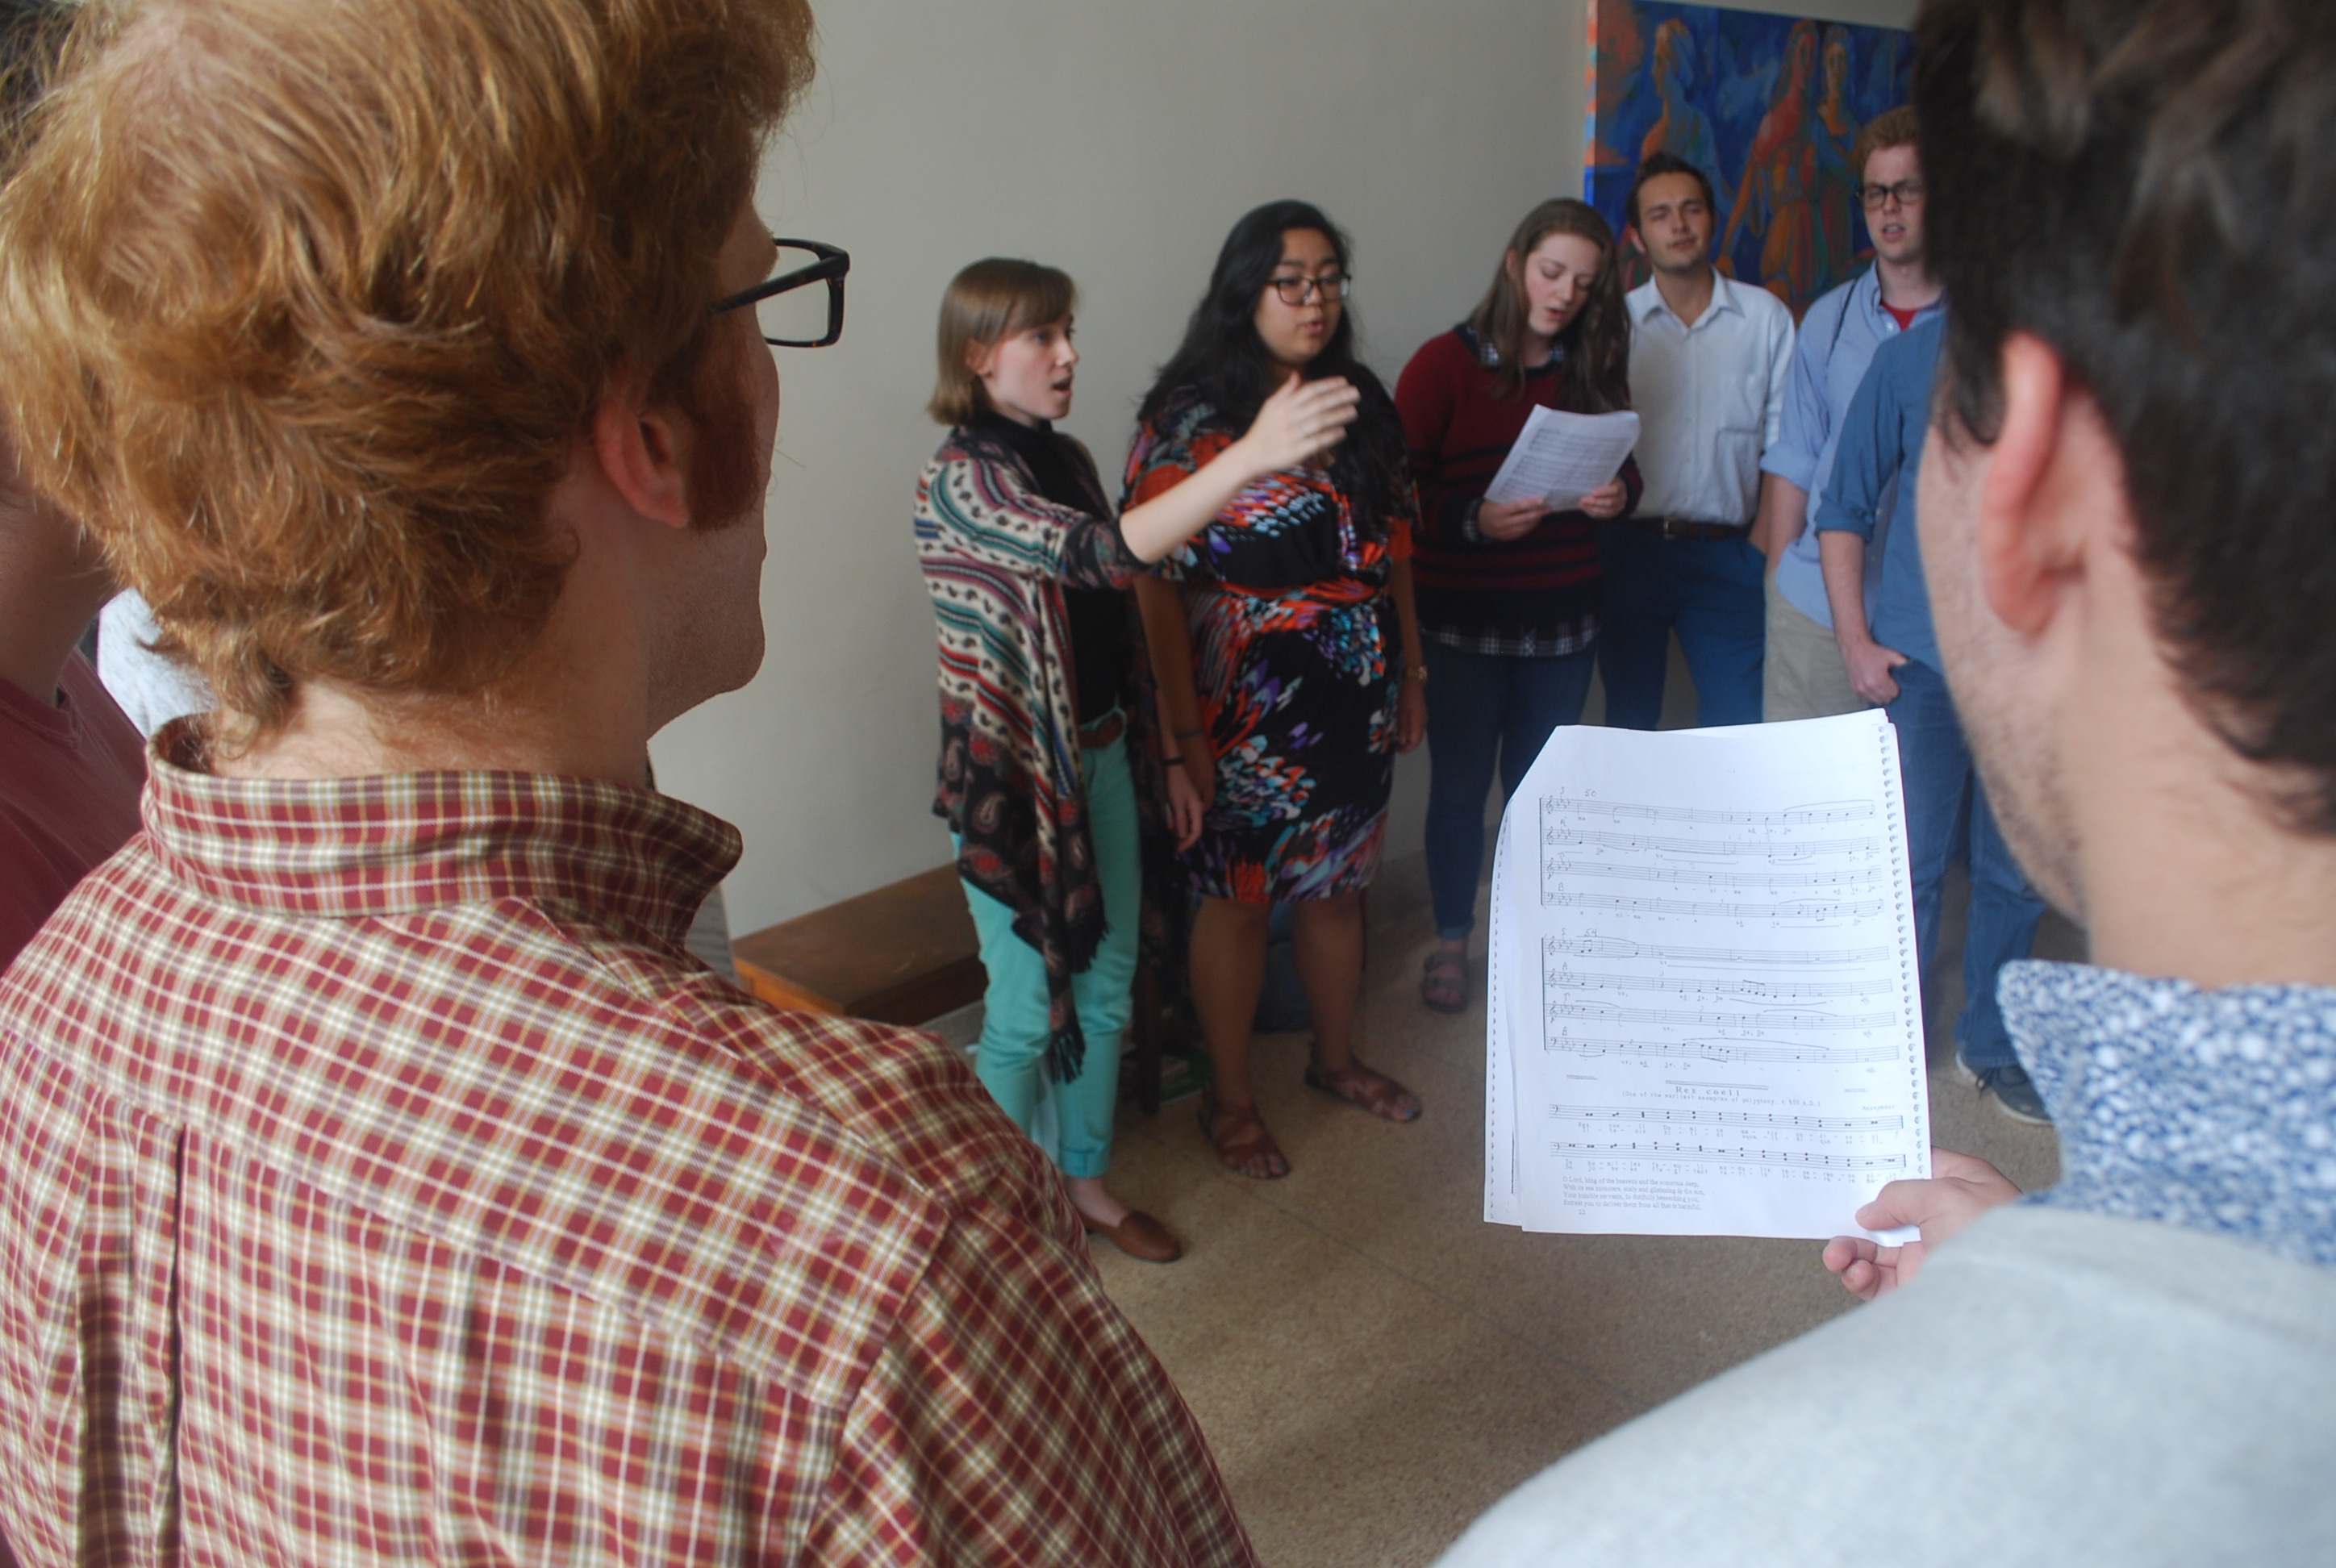 Maura Sugg leads St. John's students in the singing of Sicut Cervus